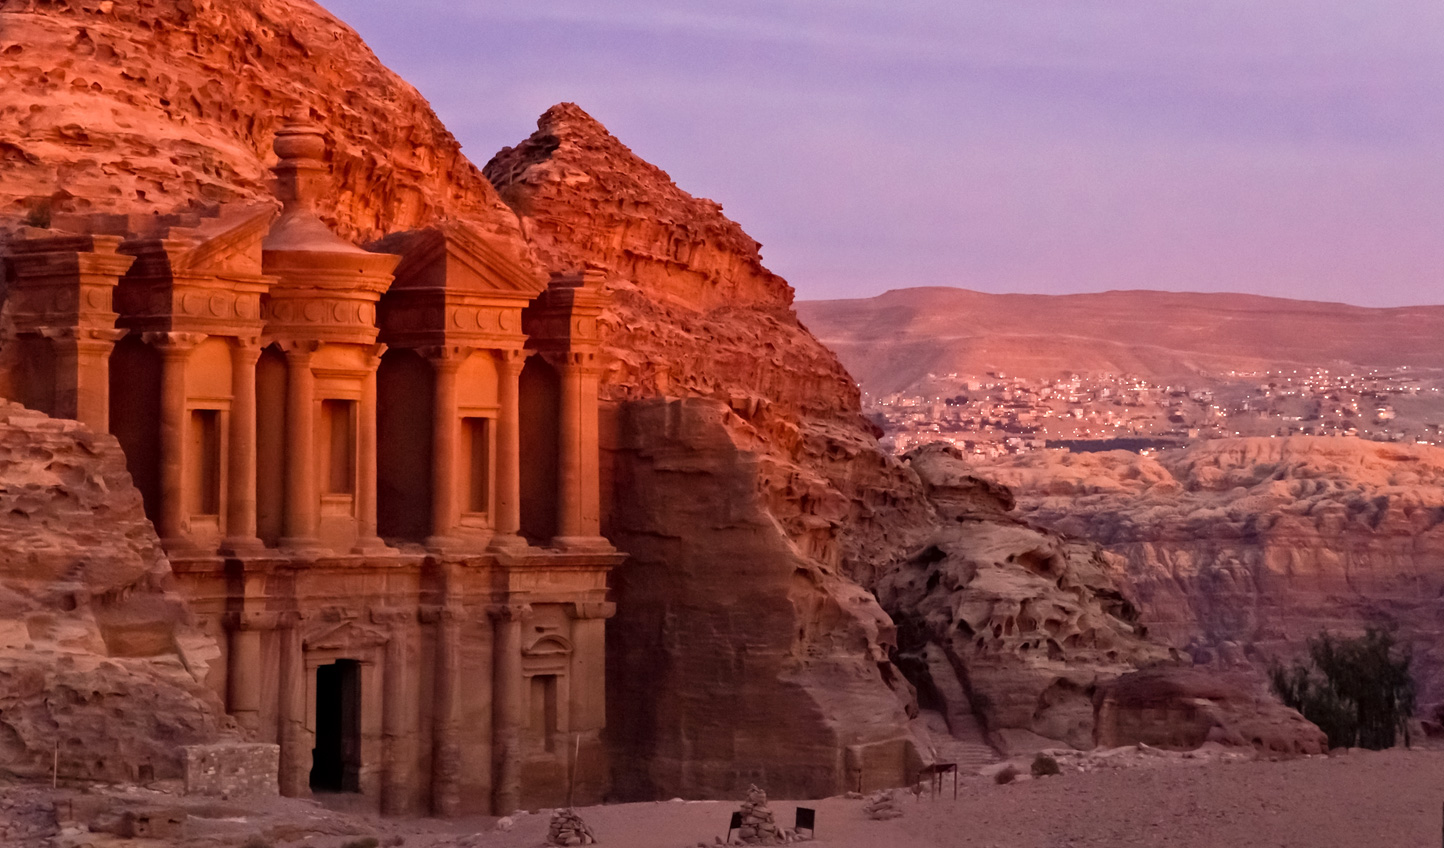 Discover the ancient city of Petra